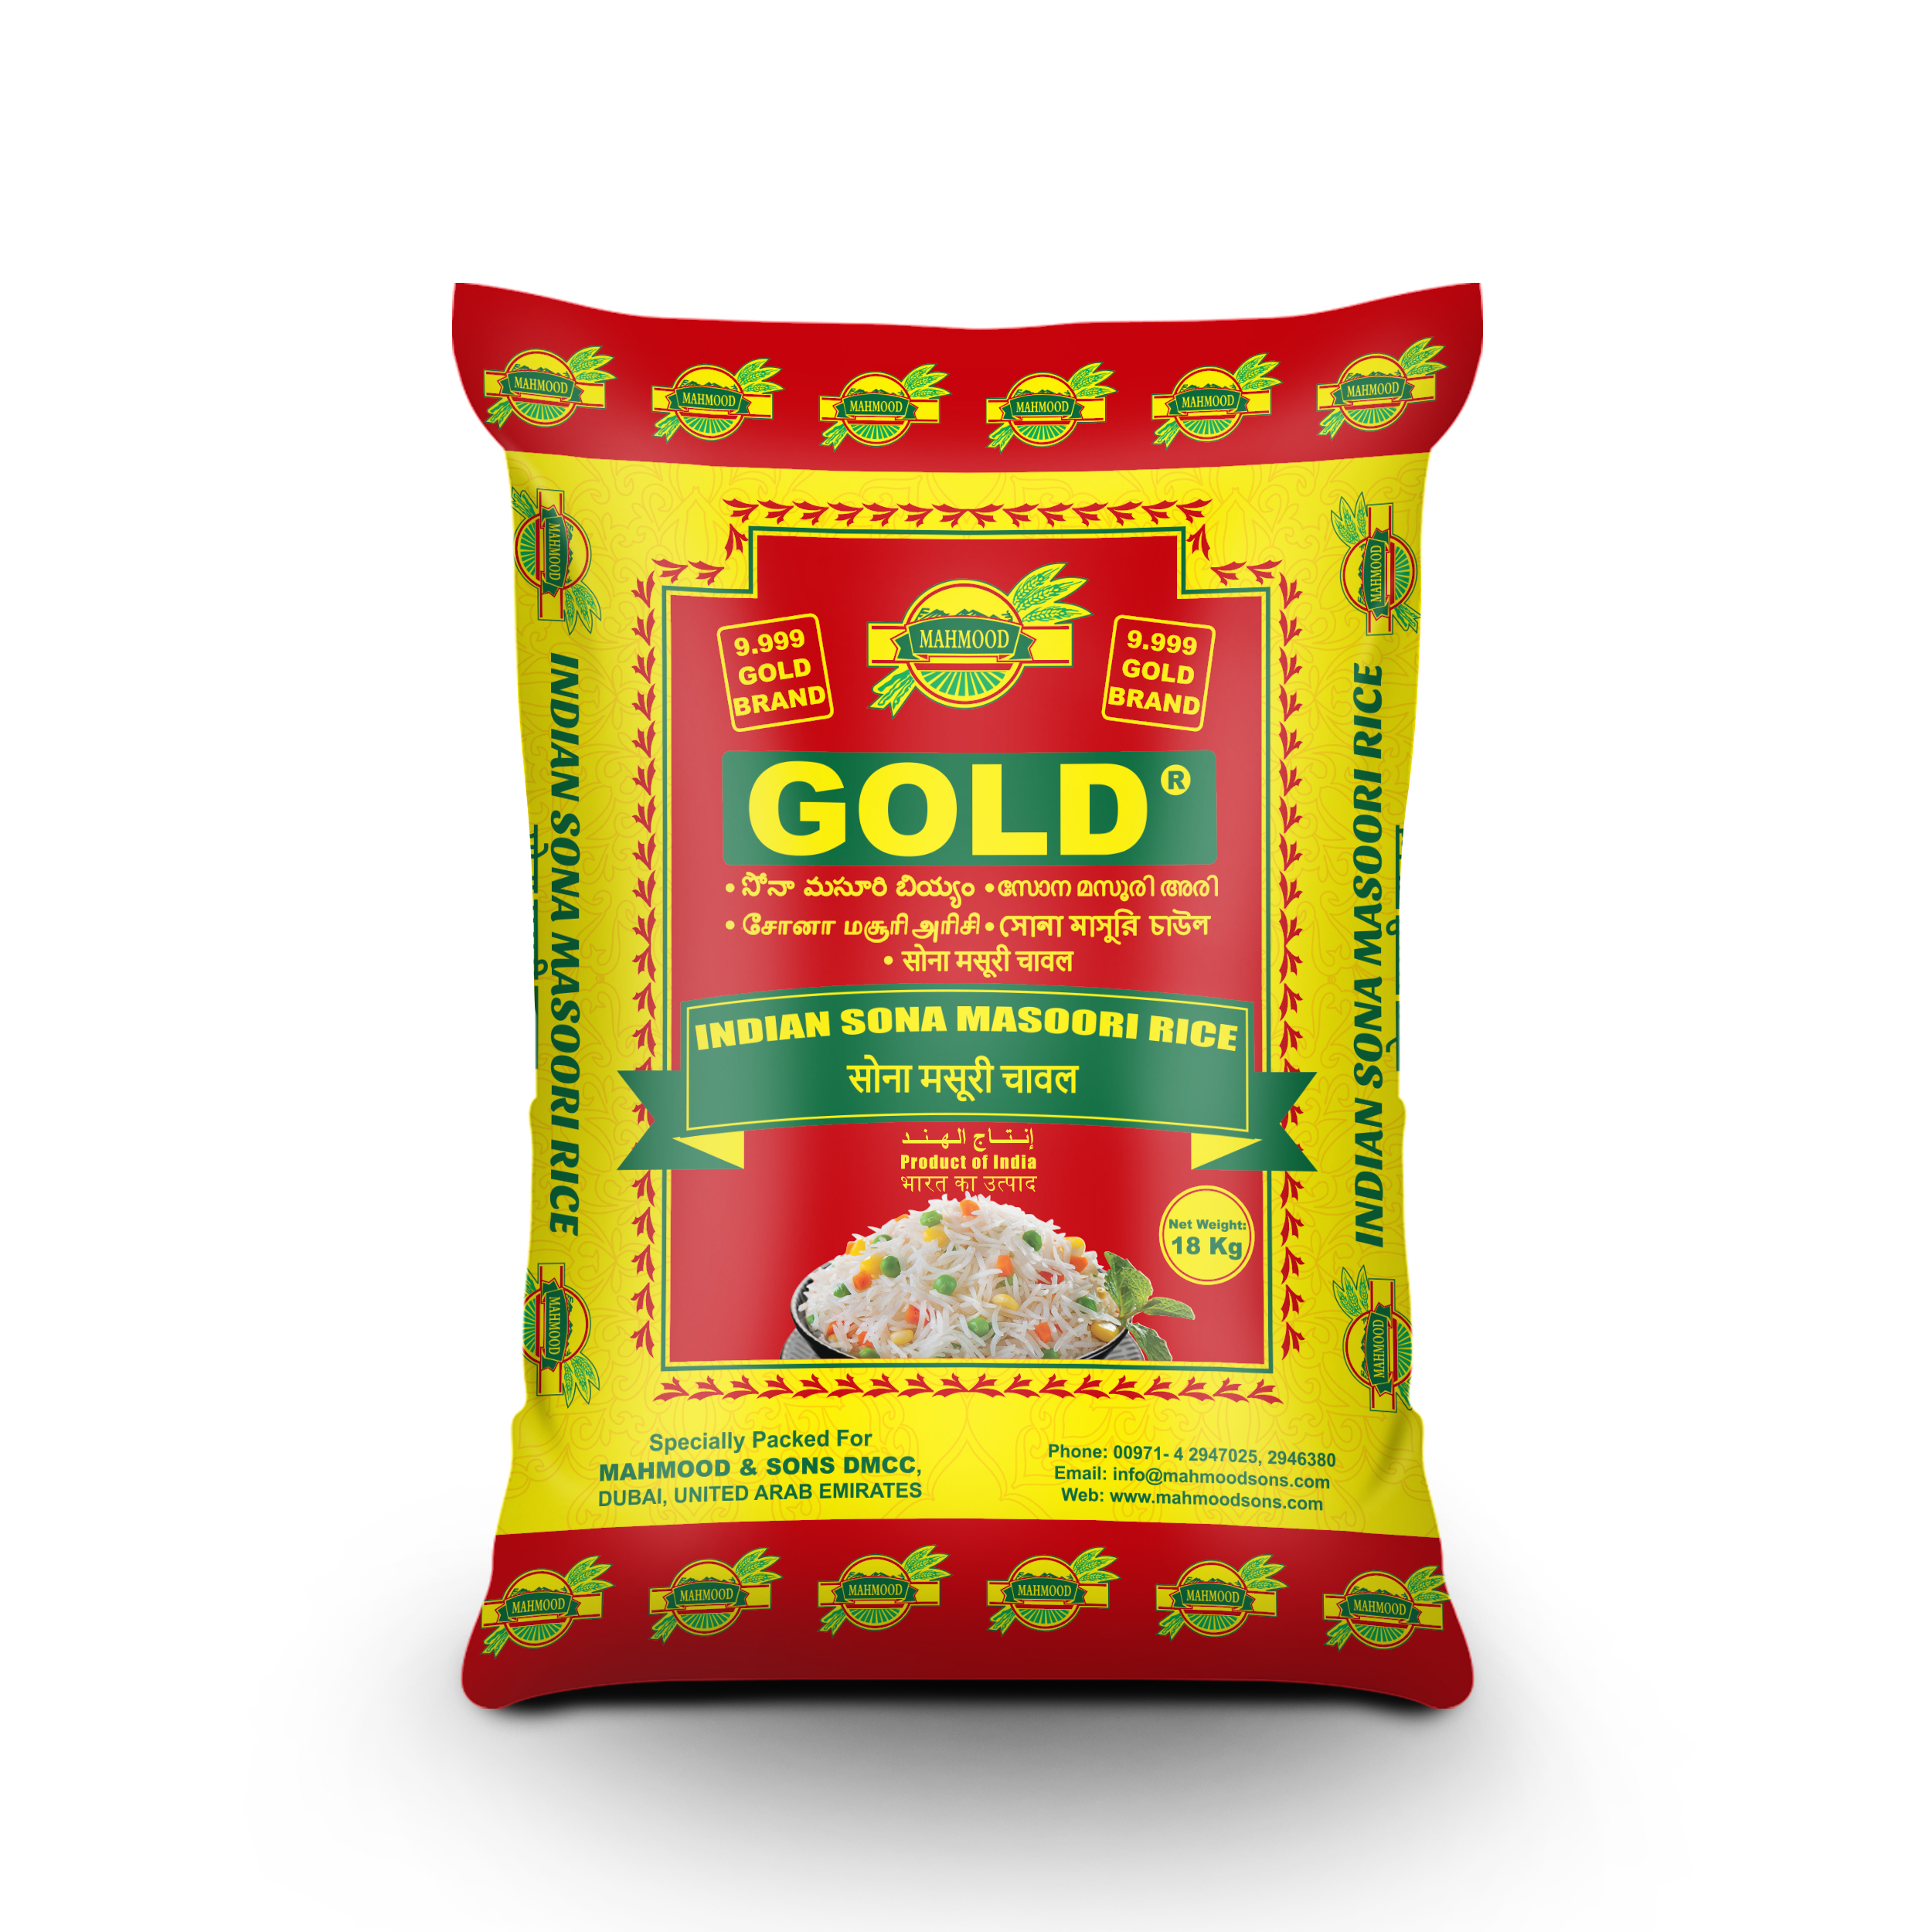 GOLD INDIAN SONA MASOORI RICE